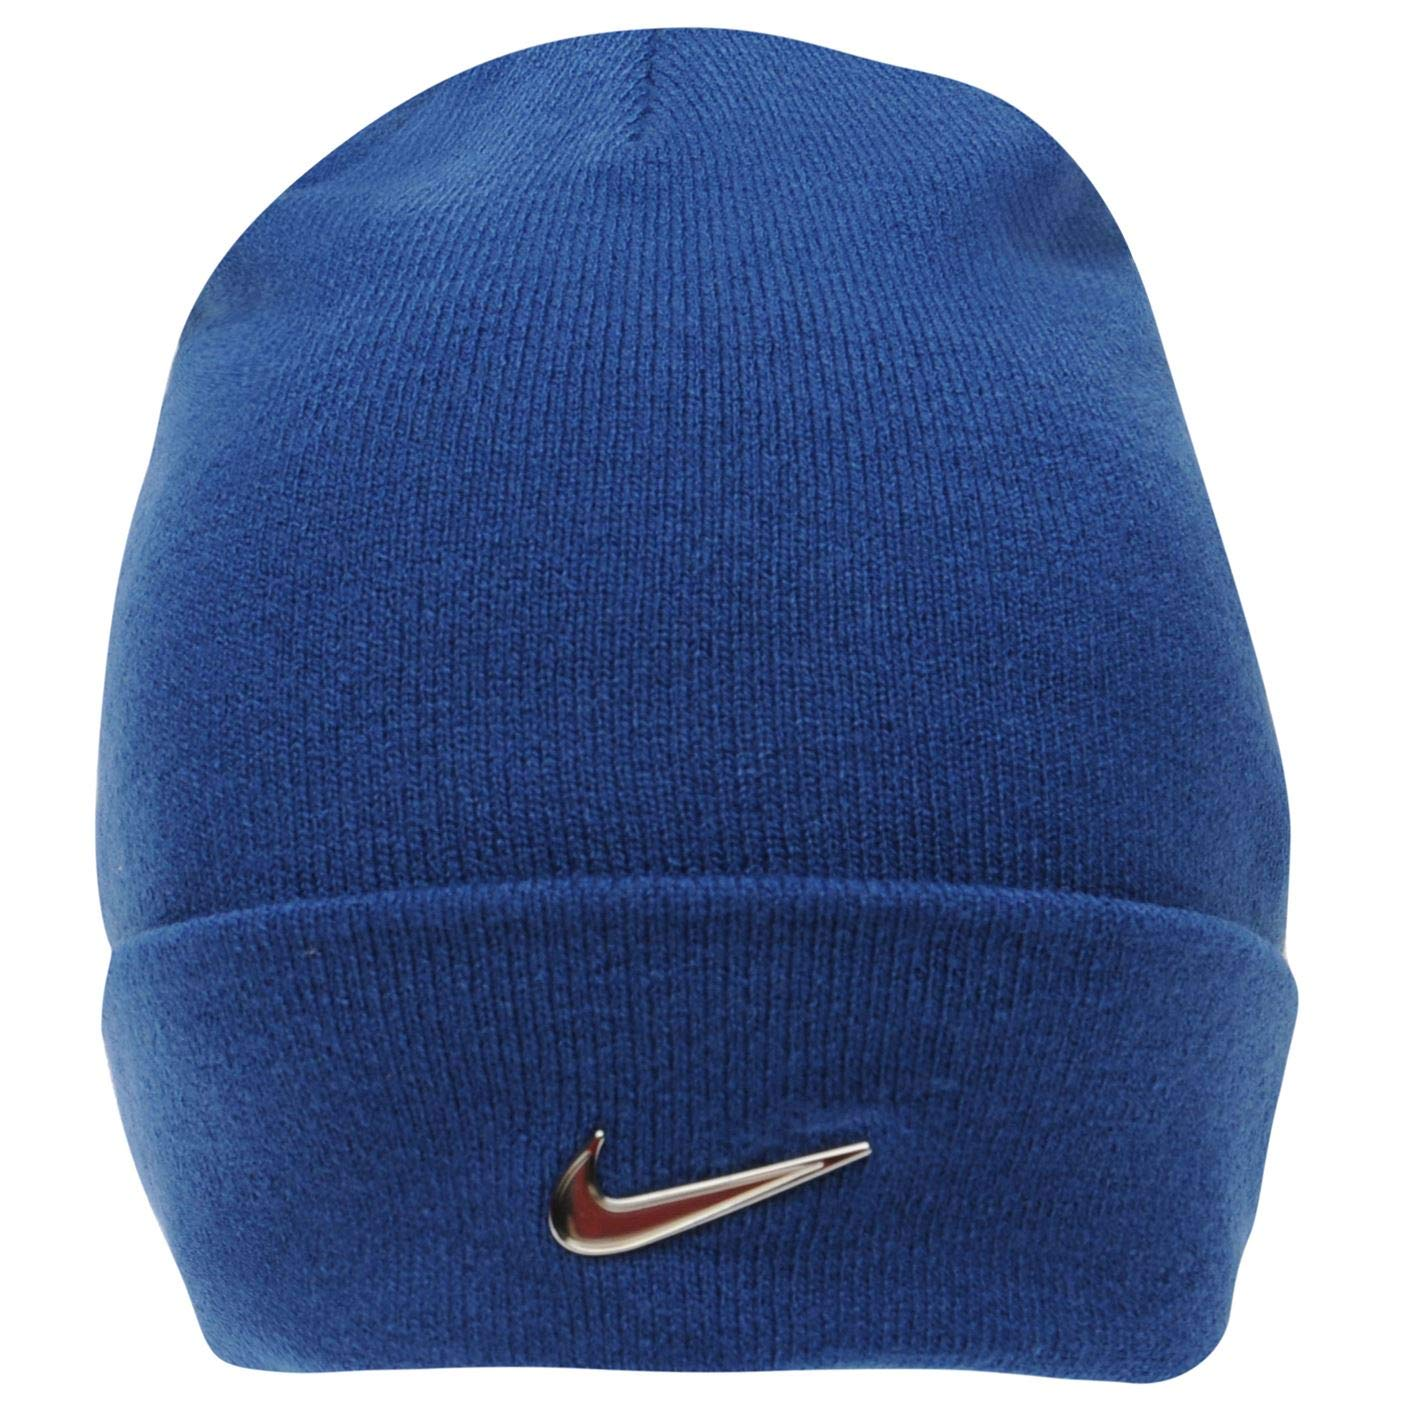 98b0043b7 Nike Junior Beanie Metal Logo Blue Hat Fits Six to Thirteen Years of Age